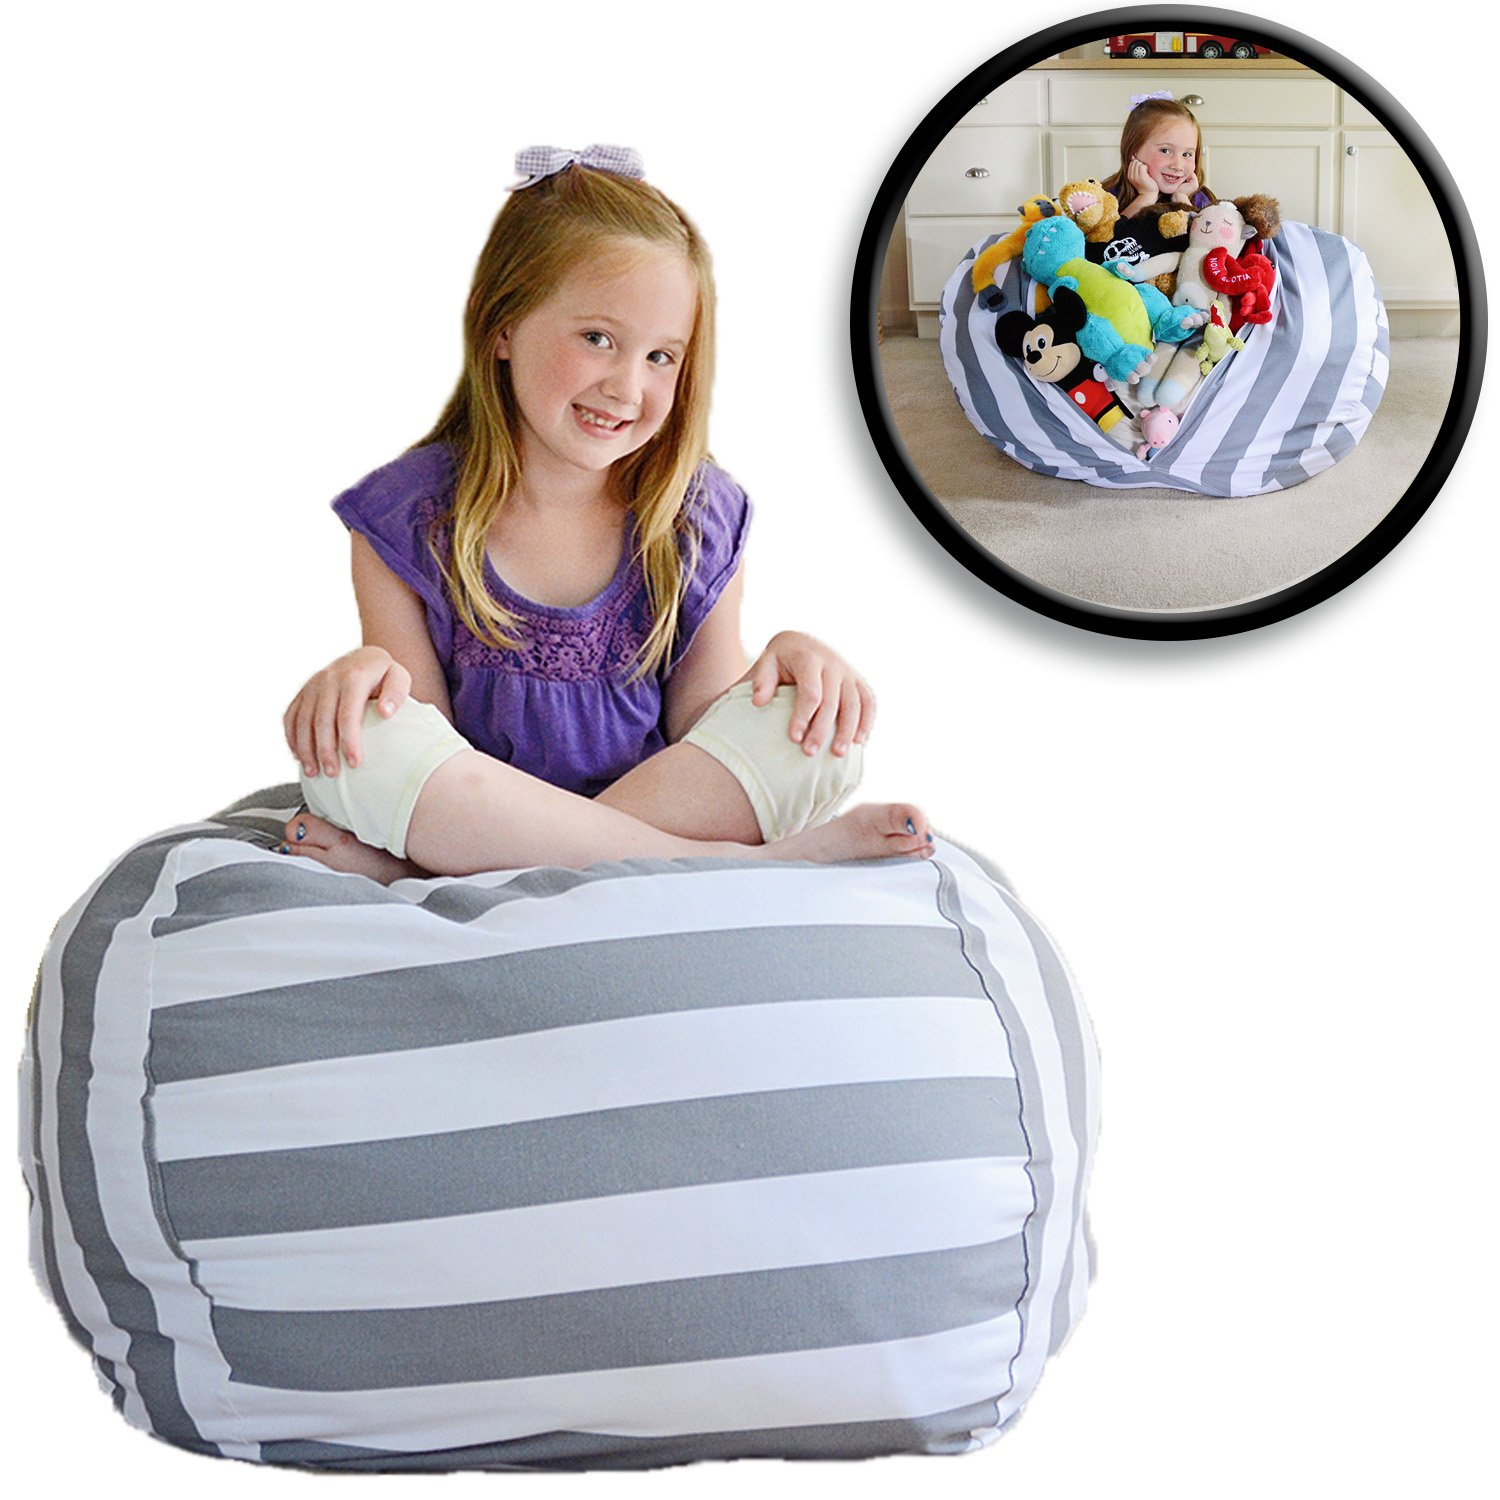 Creative QT EXTRA LARGE Stuff 'n Sit - Stuffed Animal Storage Bean Bag Chair for Kids - Pouf Ottoman for Toy Storage - Available in 2 Sizes and 5 Patterns (38'', Grey/White Stripe) by Creative QT